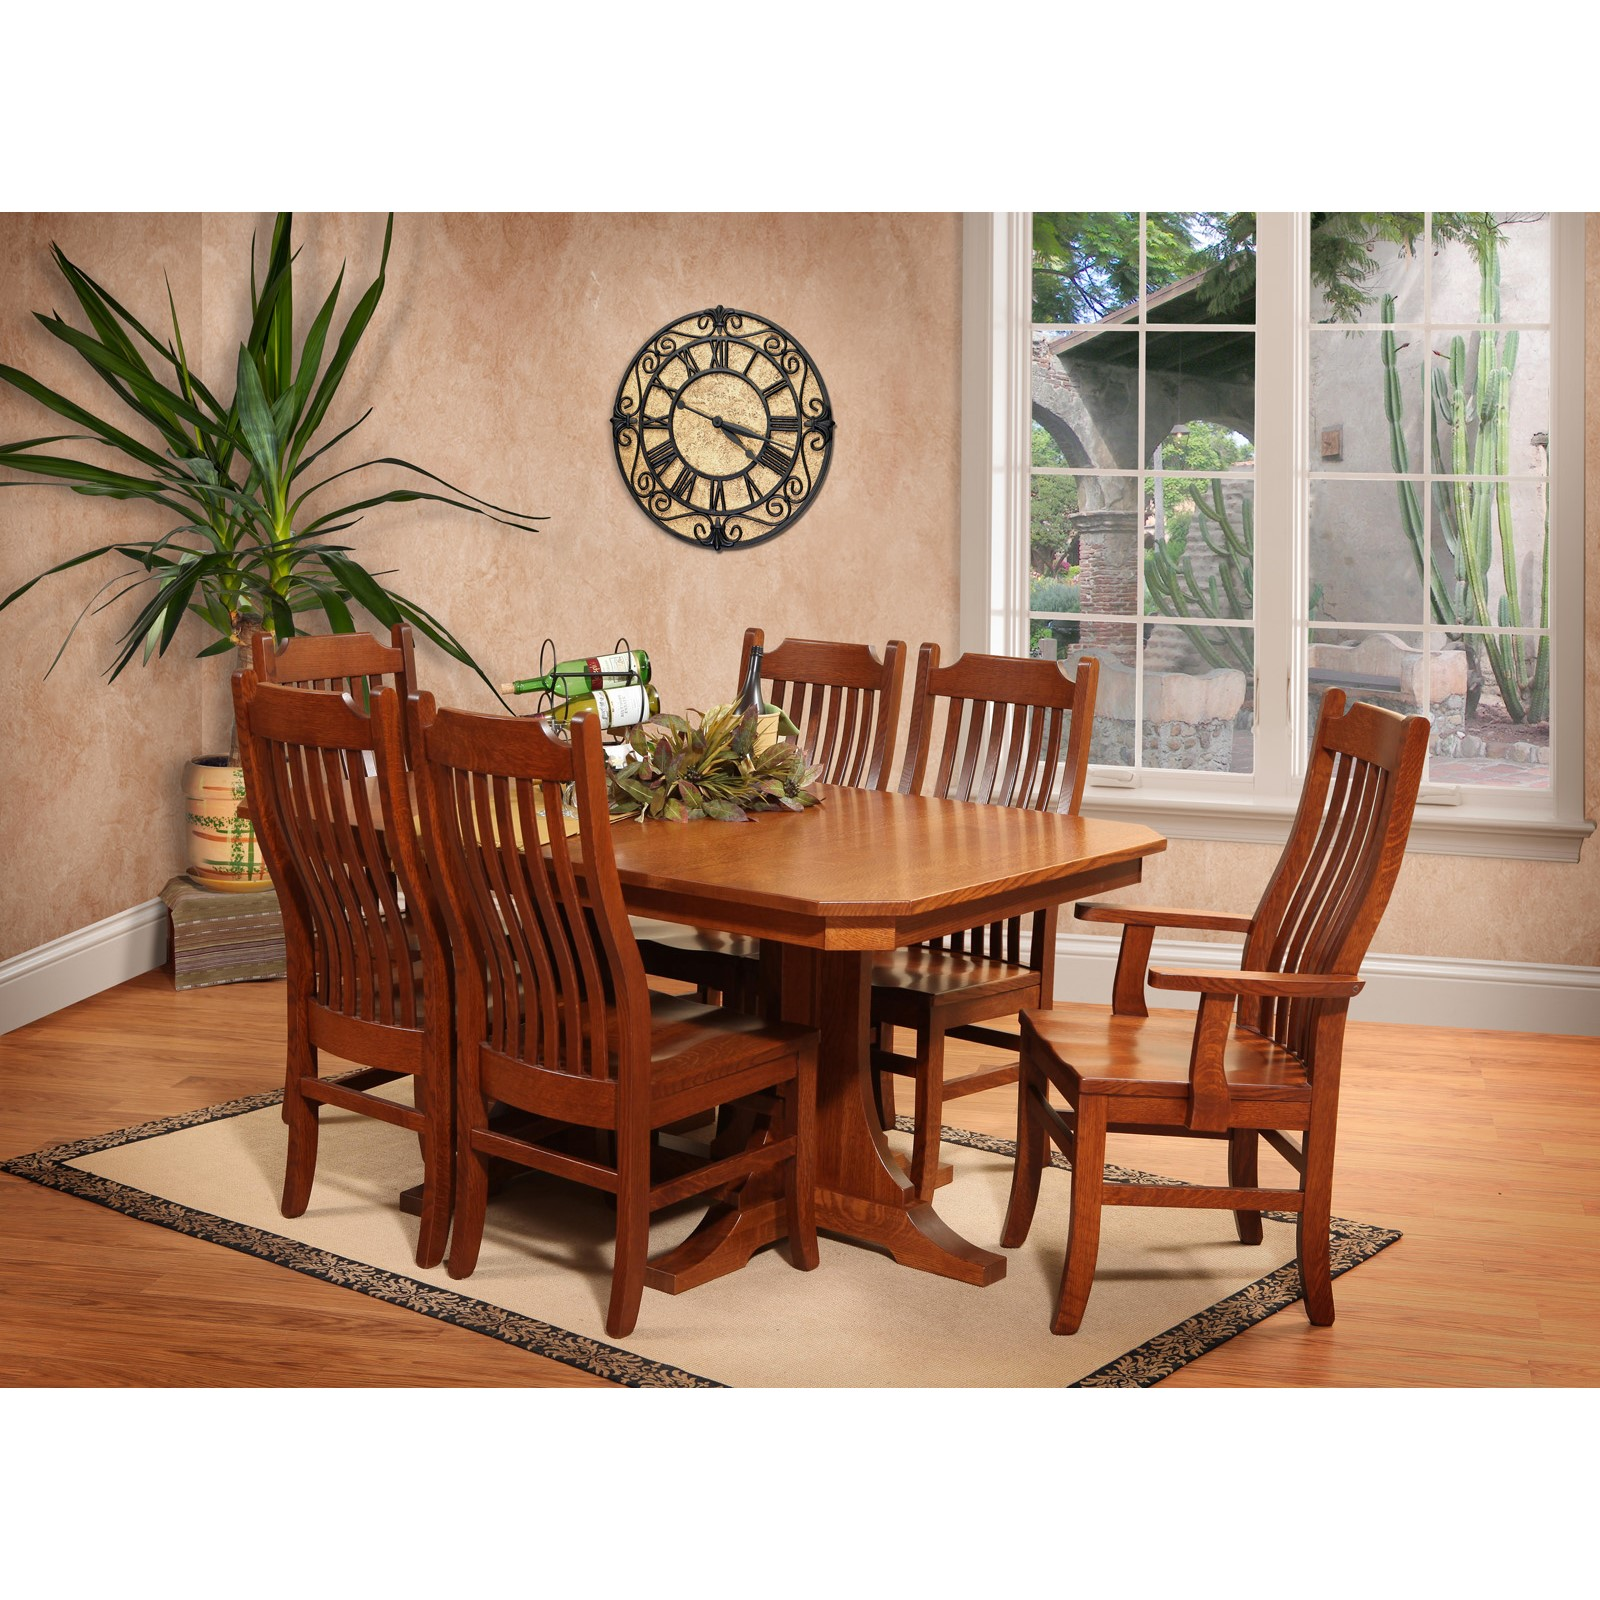 Copper Canyon 7 Pc Dining Room Set By Trailway